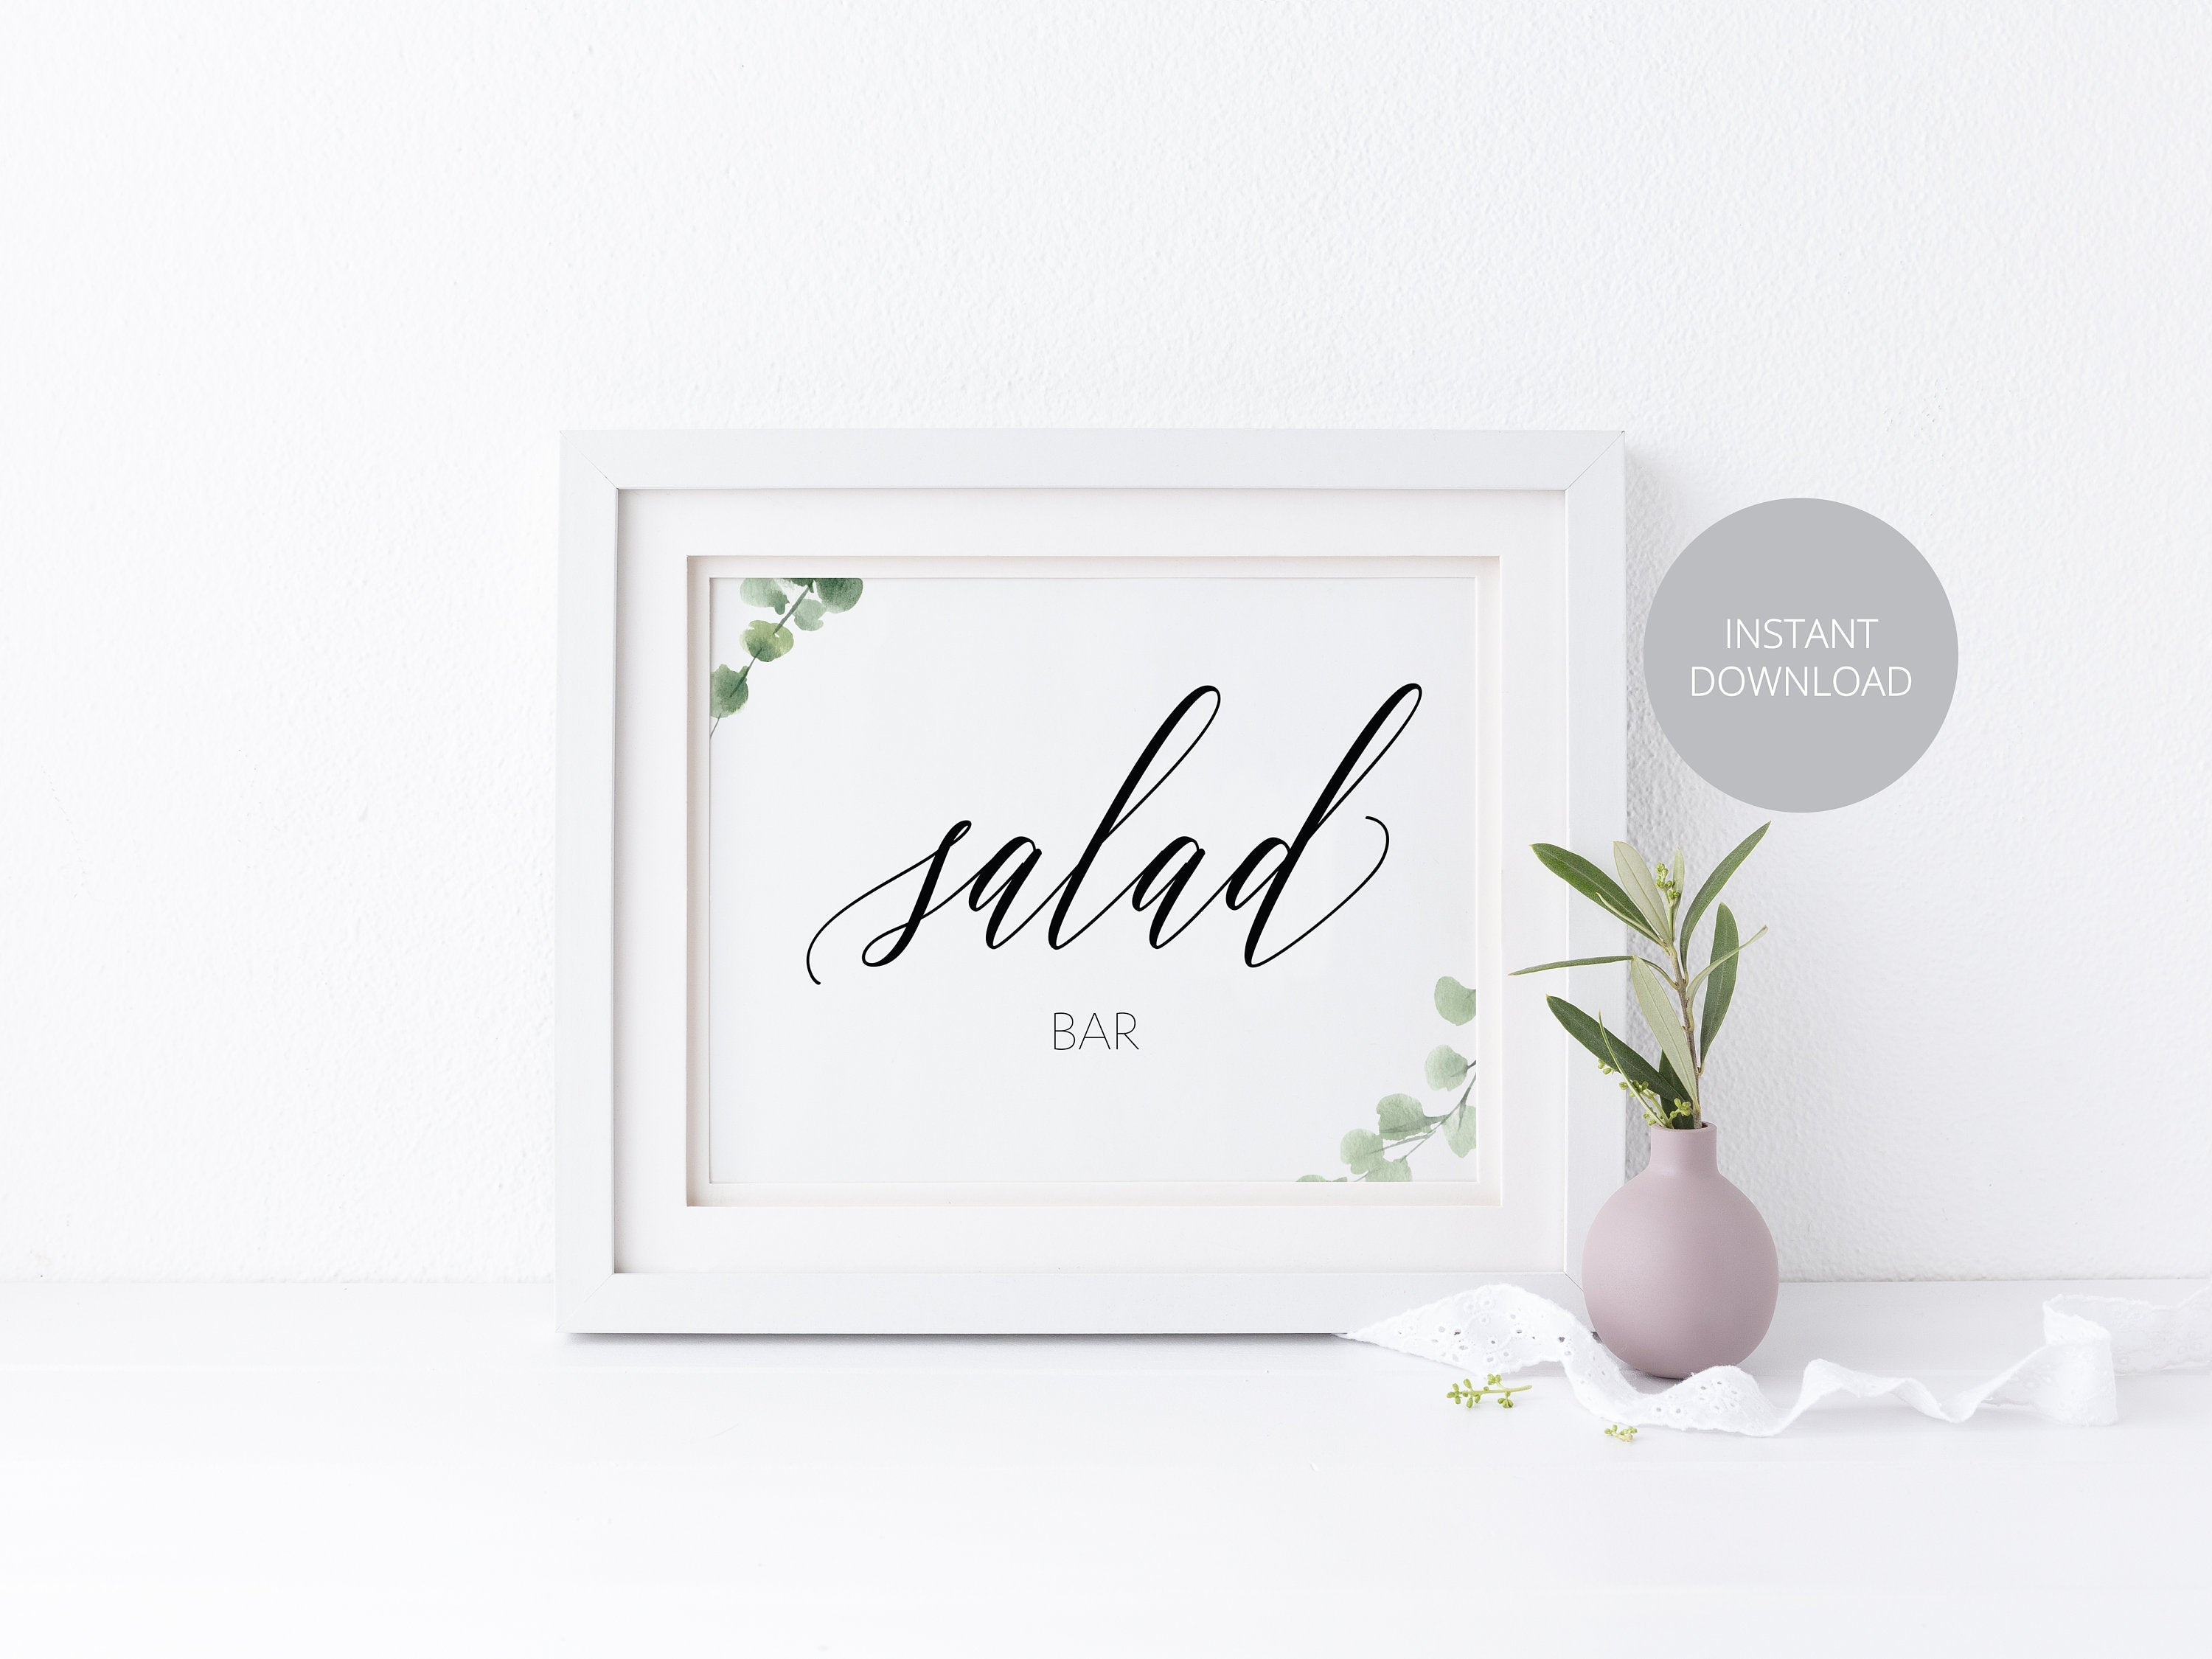 Wedding Salad Bar Sign, Wedding Bar Sign, Wedding Food Sign, Wedding Signage, Wedding, Wedding Decor, Instant Download